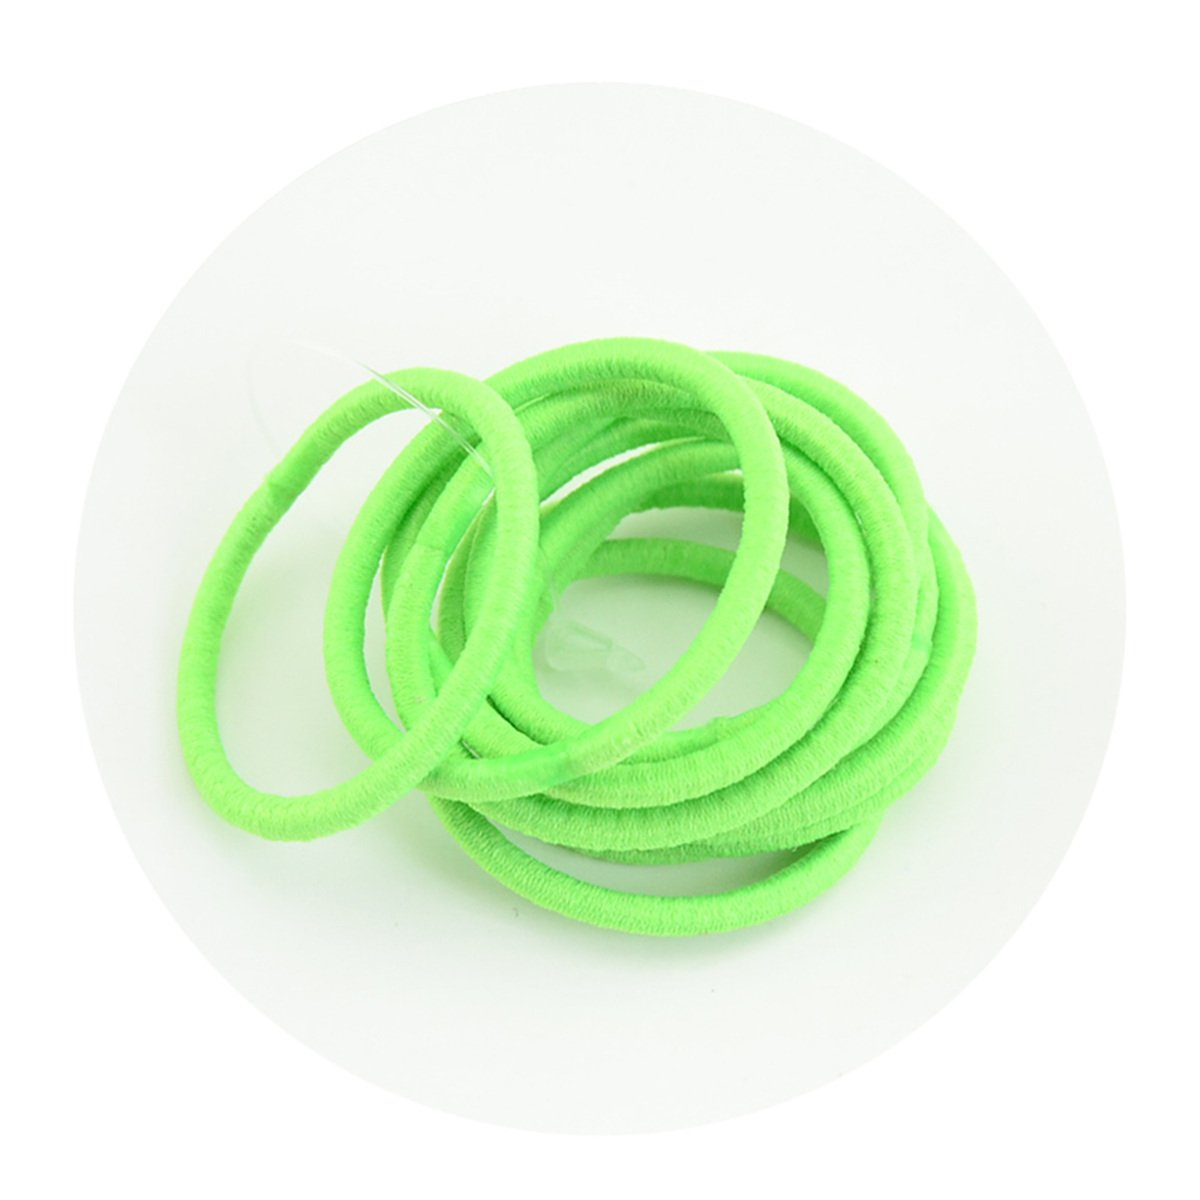 Details about  /Elastic Clear Ponytail Holder Fashion Rubber Band Hair Ties Rope Rings Supplies